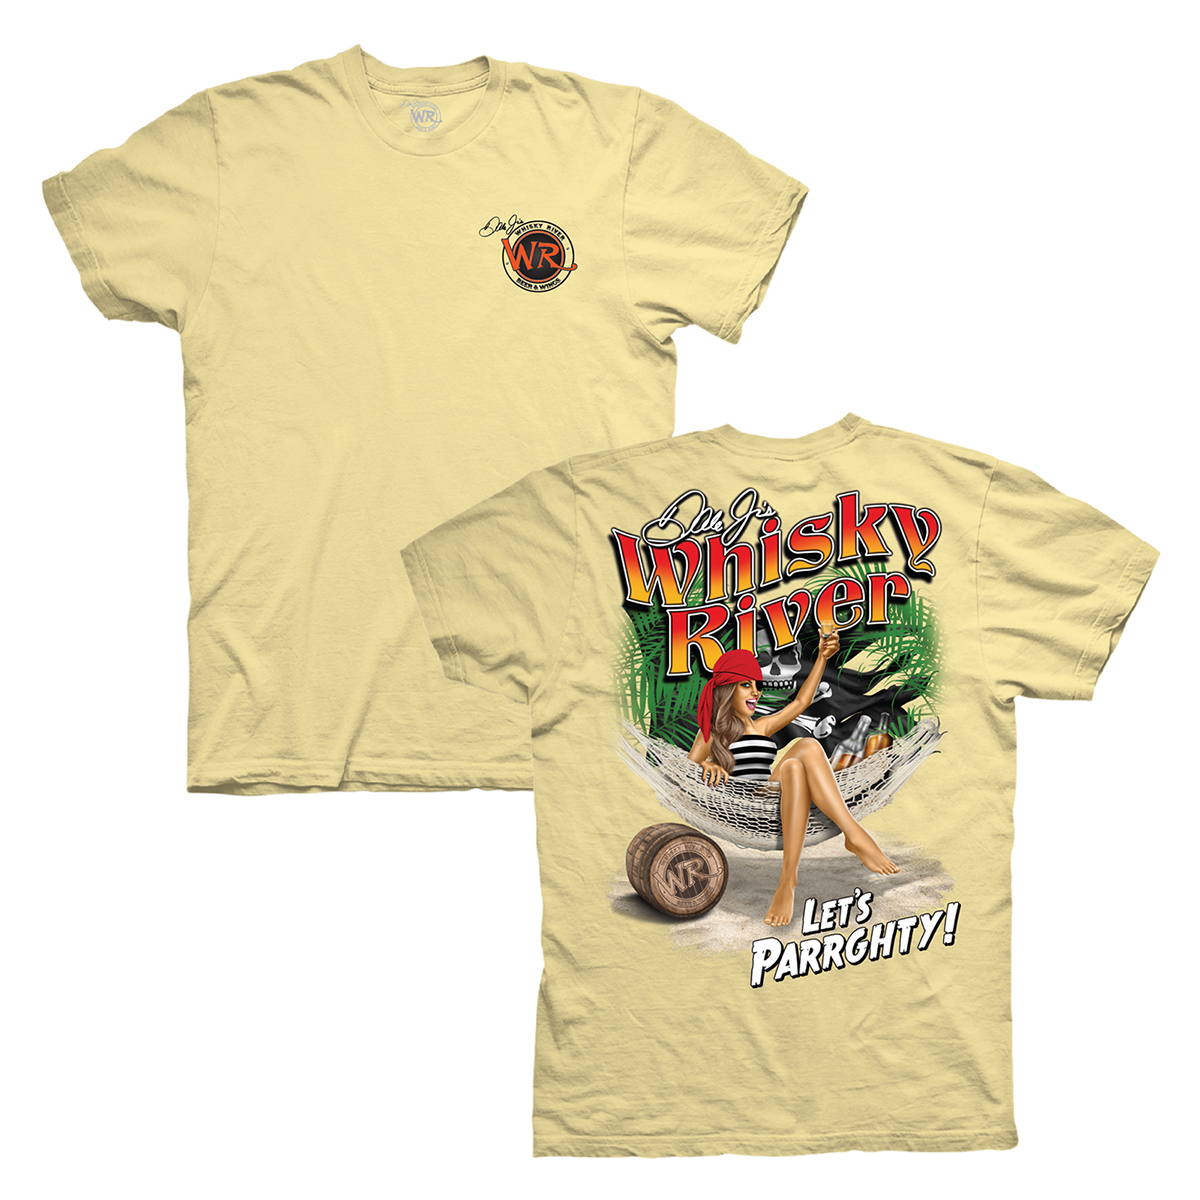 Whisky River Parrghty PinUp T-shirt